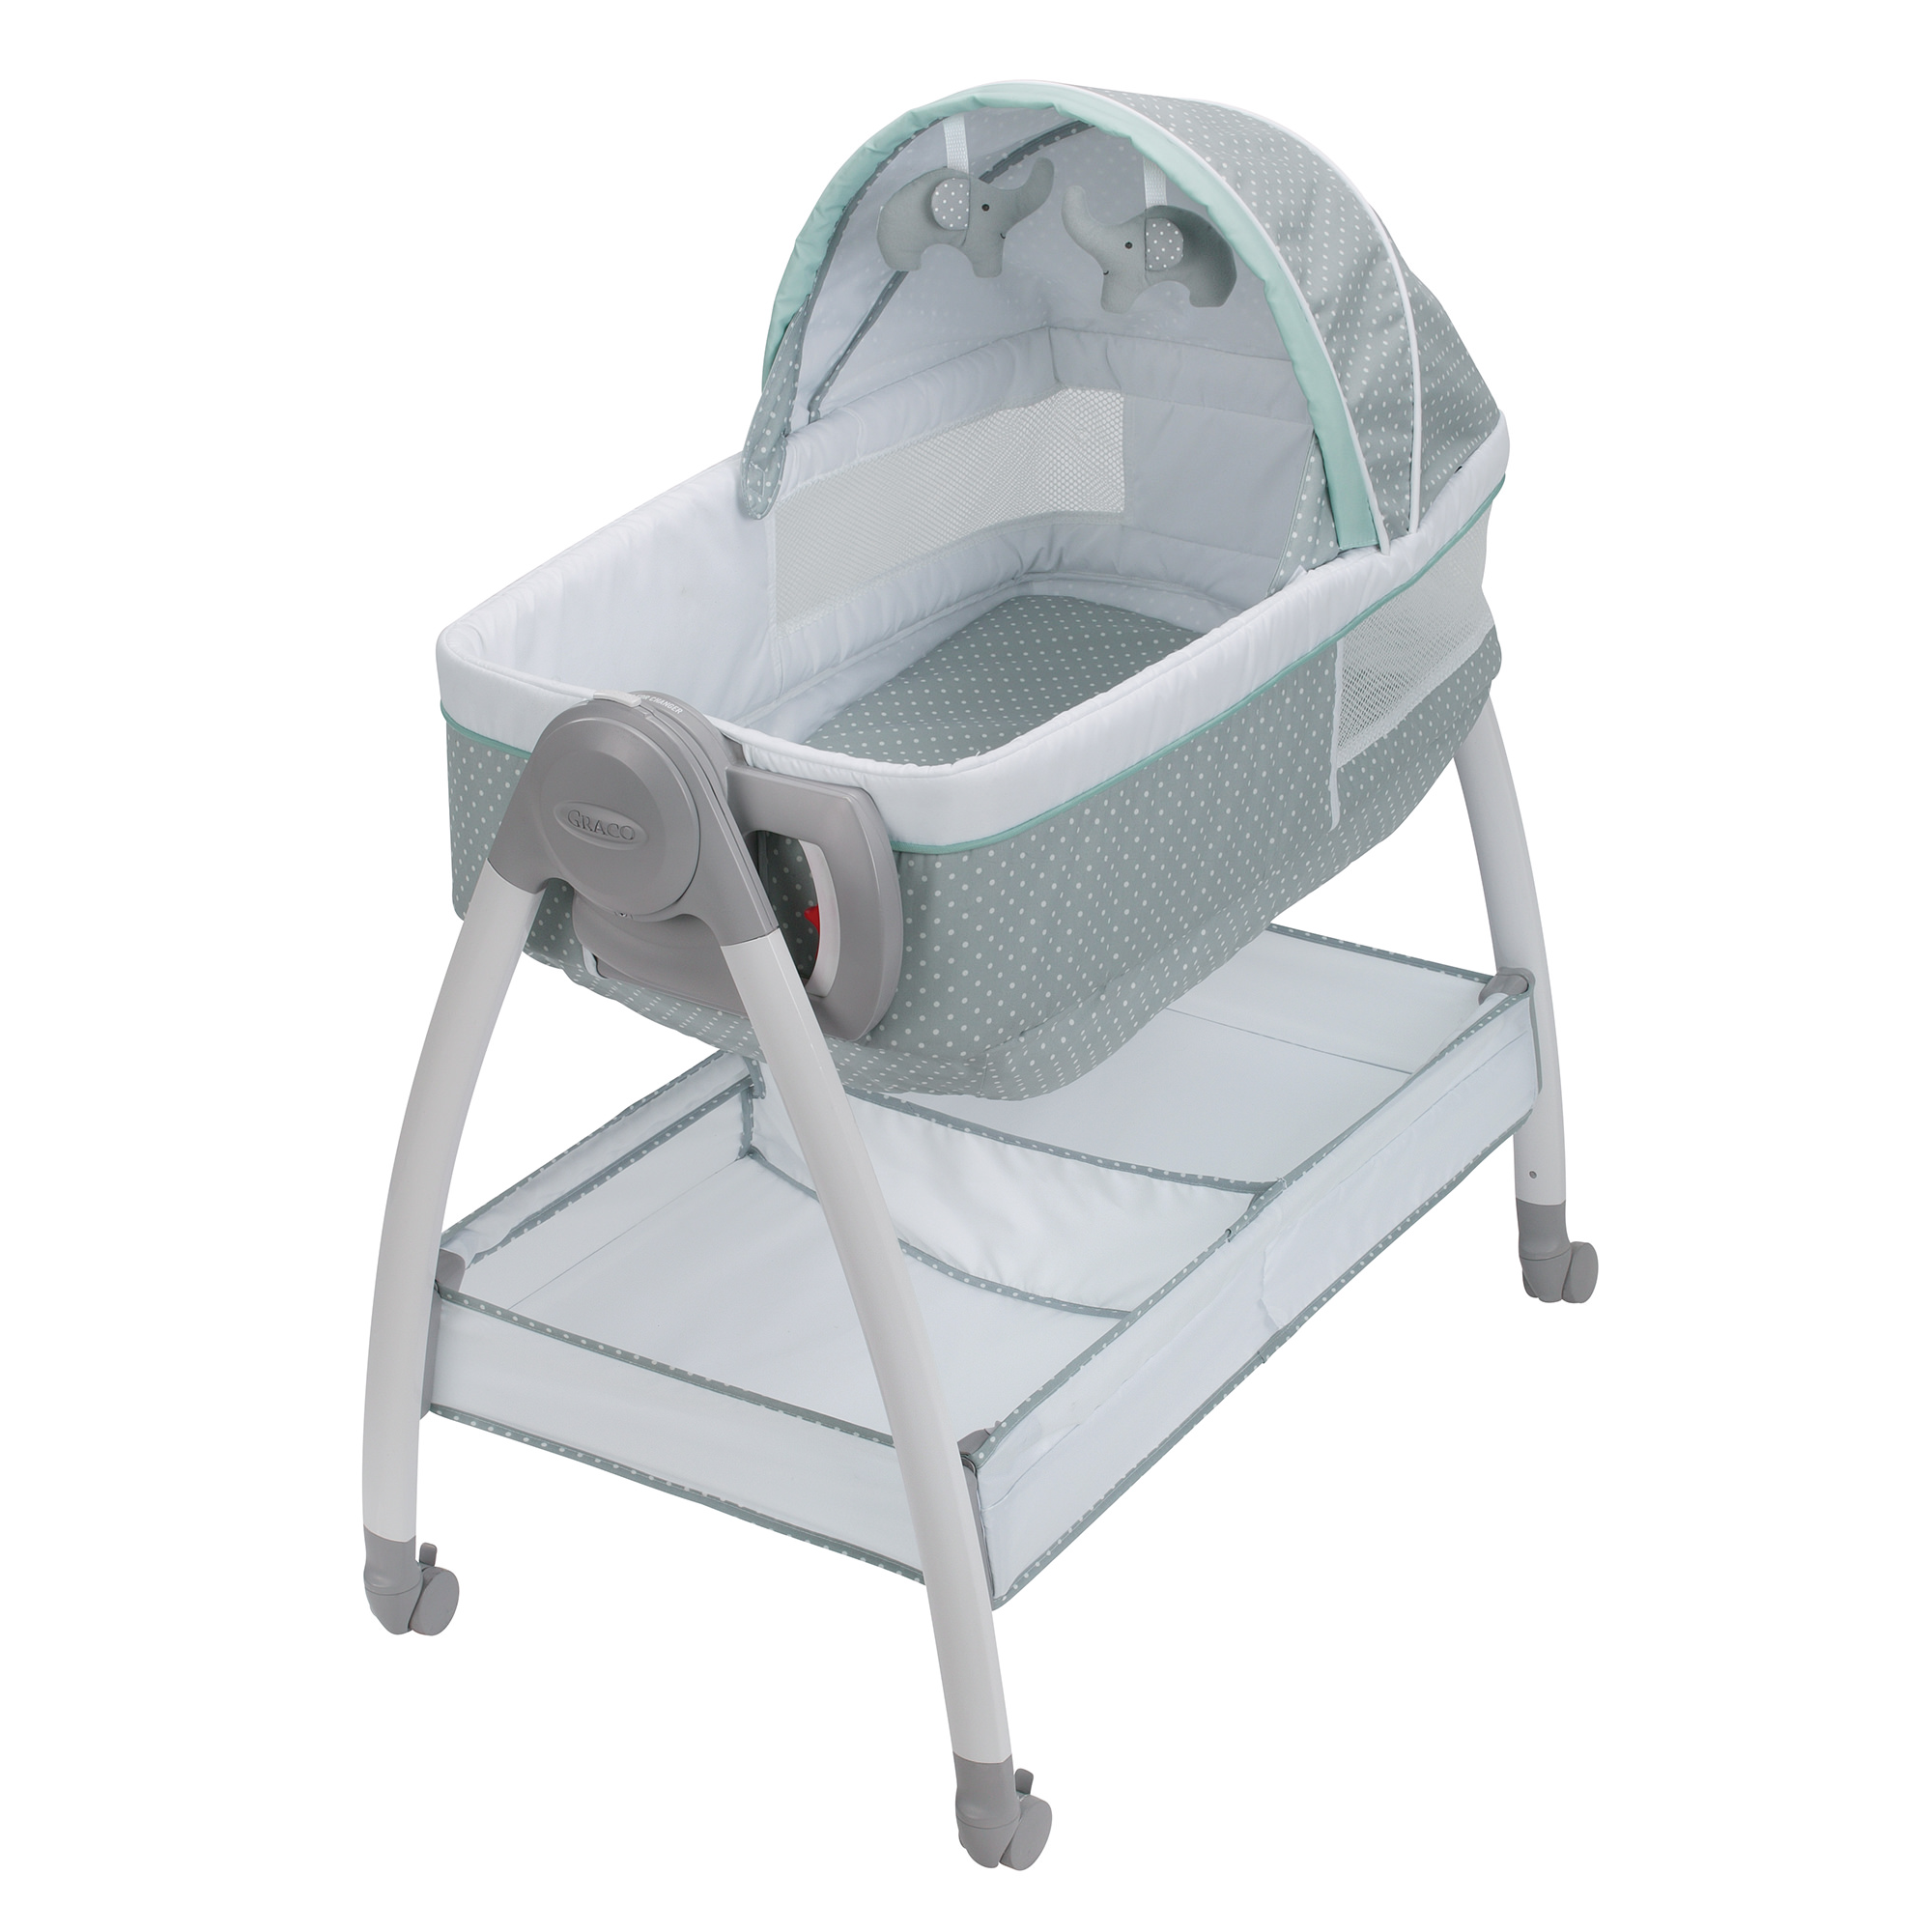 Graco Dream Suite Bassinet and Changer, Lullaby by Graco